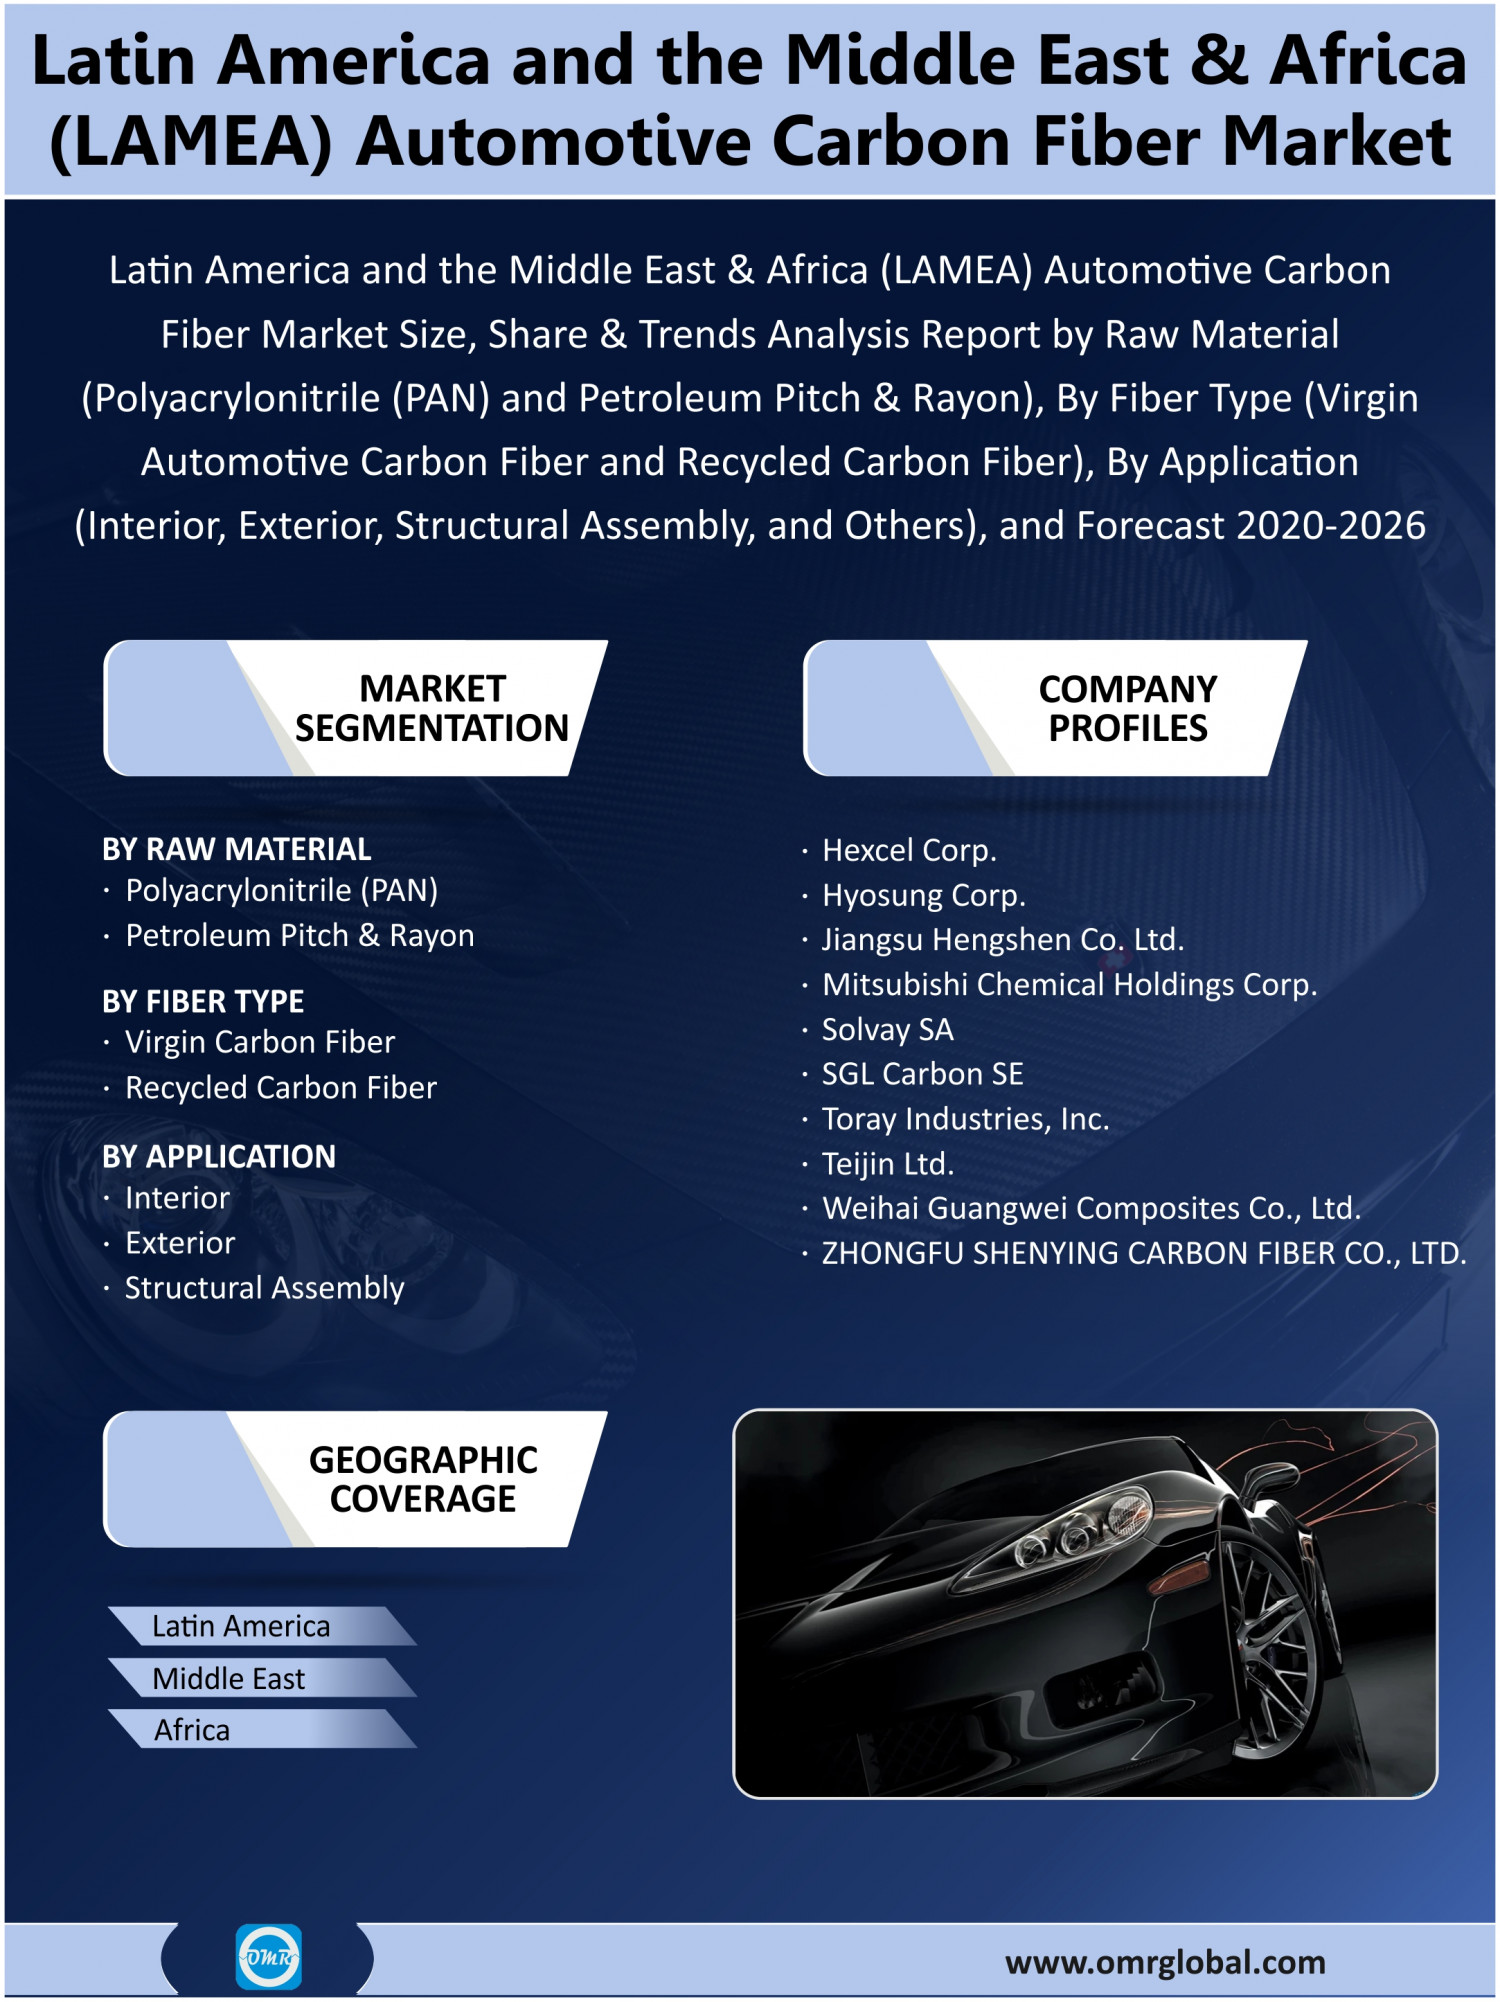 LAMEA Automotive Carbon Fiber Market Research and Forecast 2020-2026 Infographic